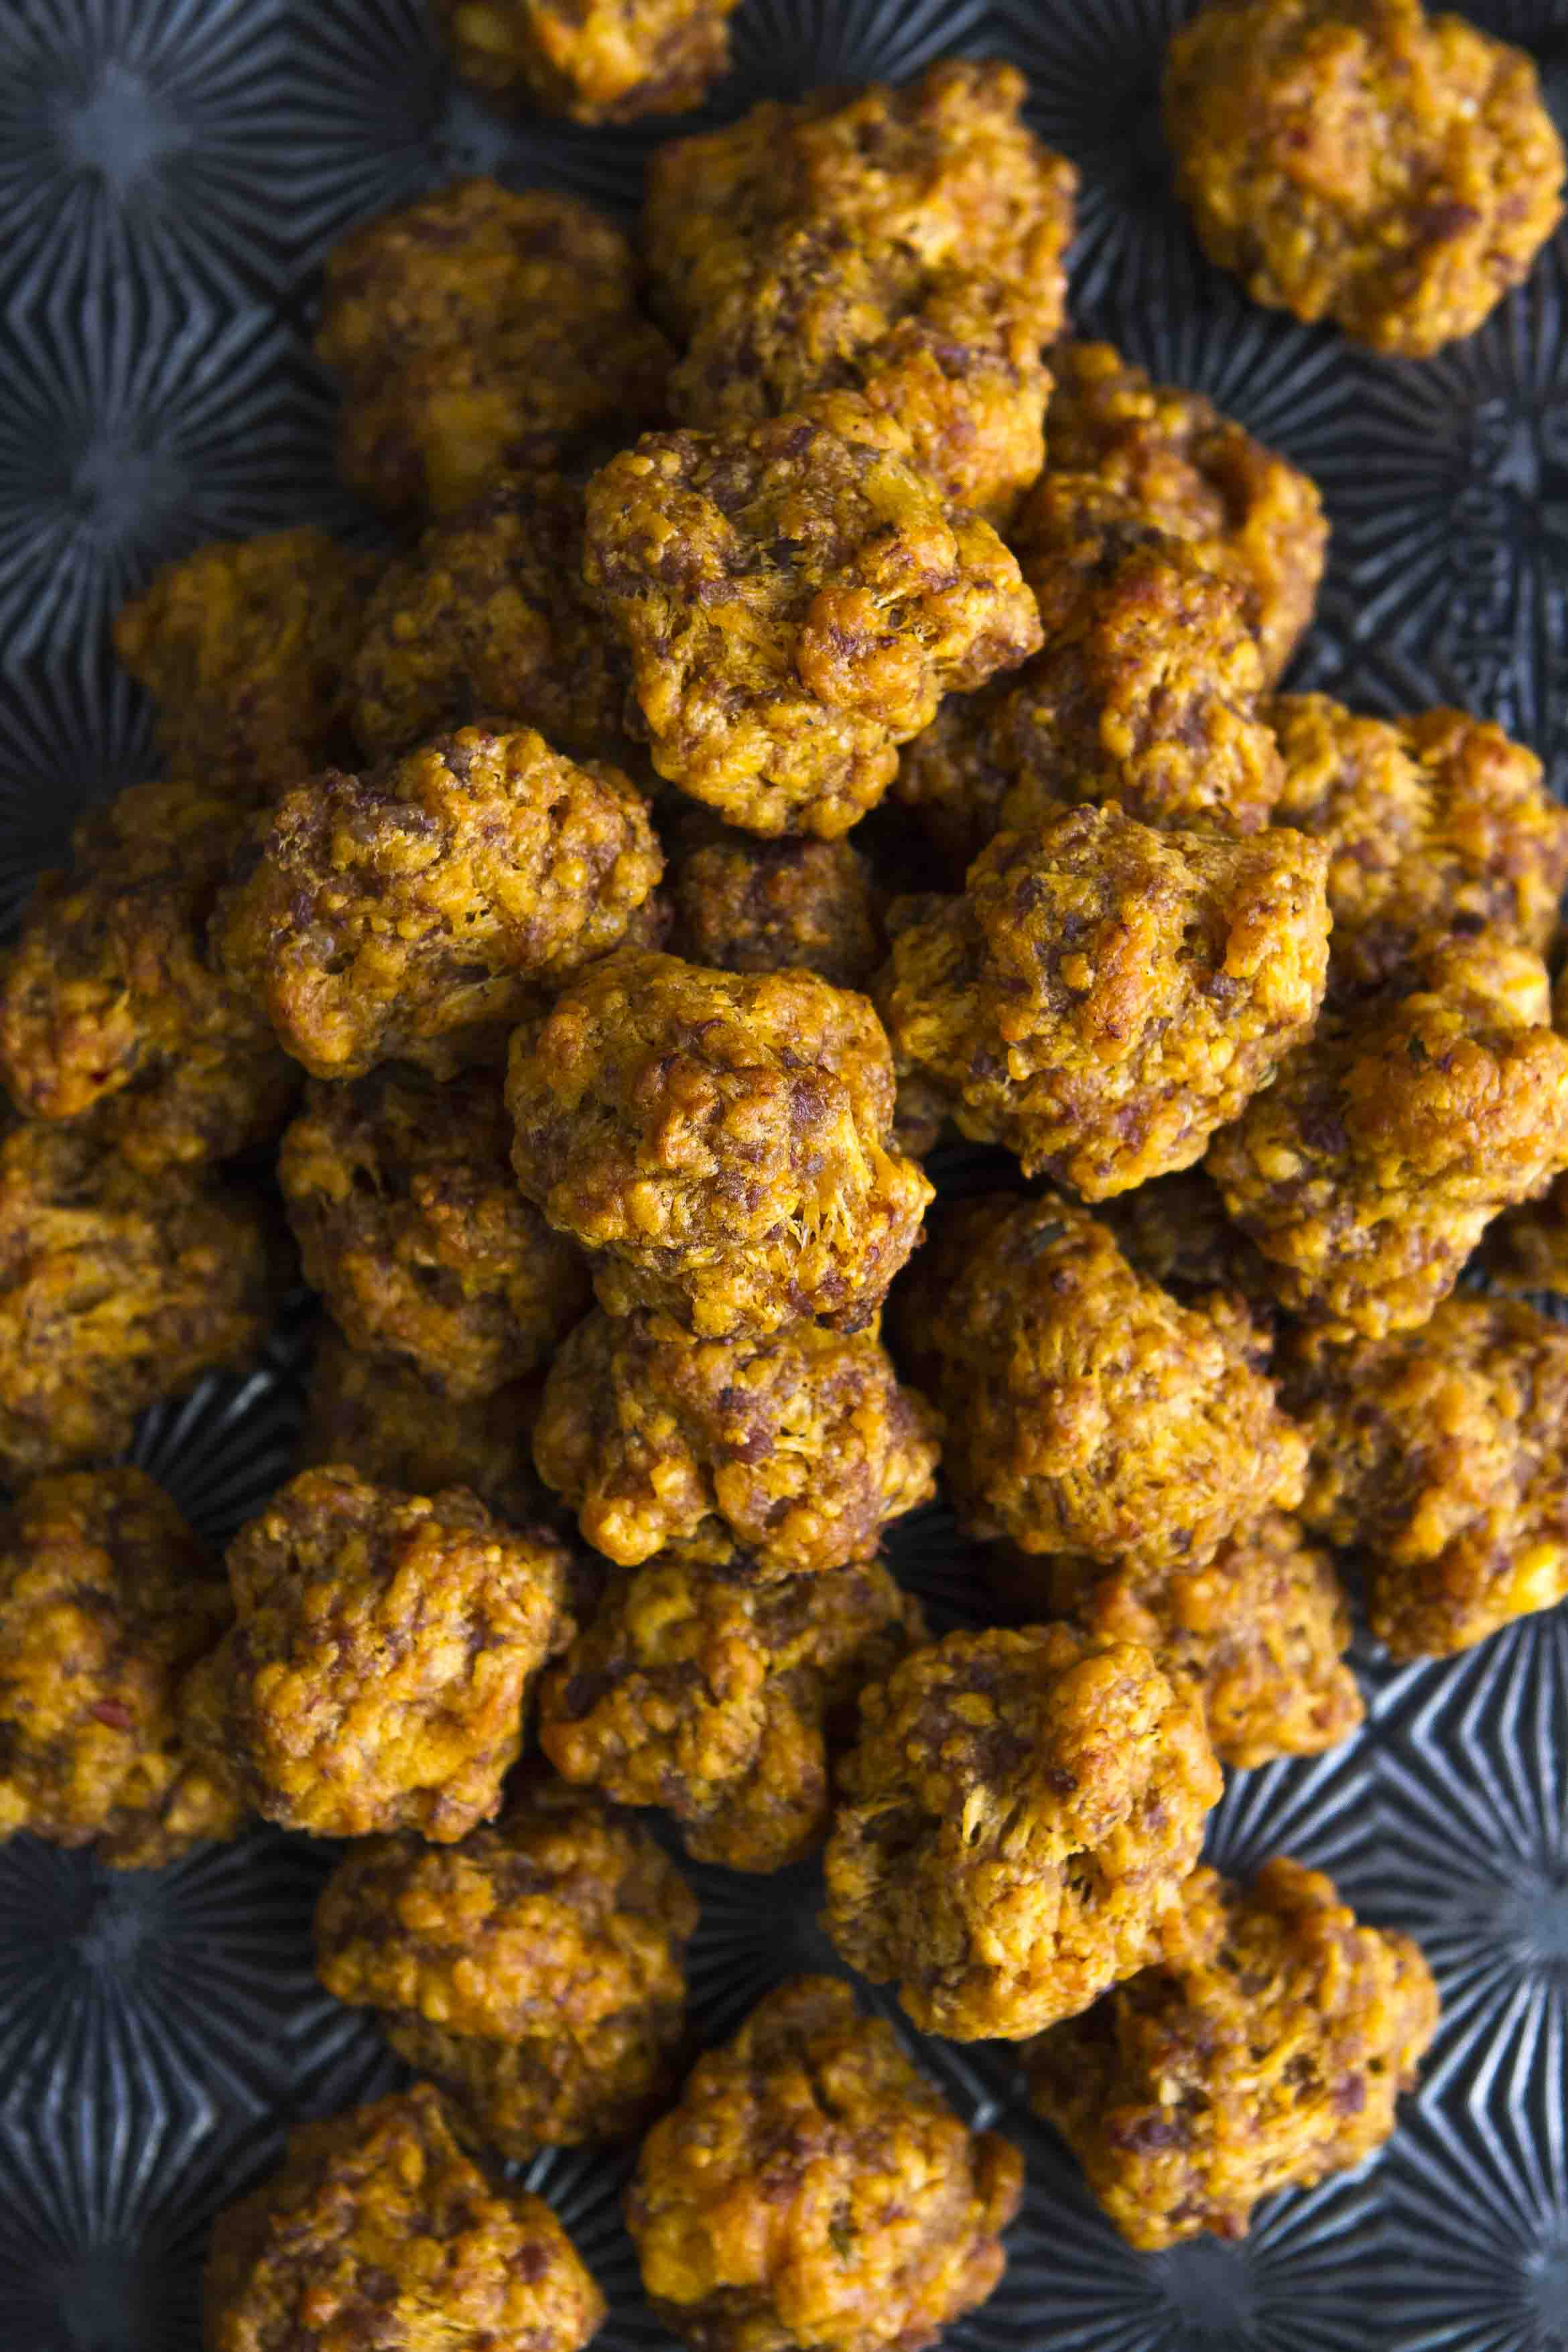 Sriracha Sausage Cheddar Balls -- a kicked up take on the Southern classic sausage cheddar balls recipe… These easy sausage balls are made from scratch and totally kid approved, a MUST for game day!   unsophisticook.com